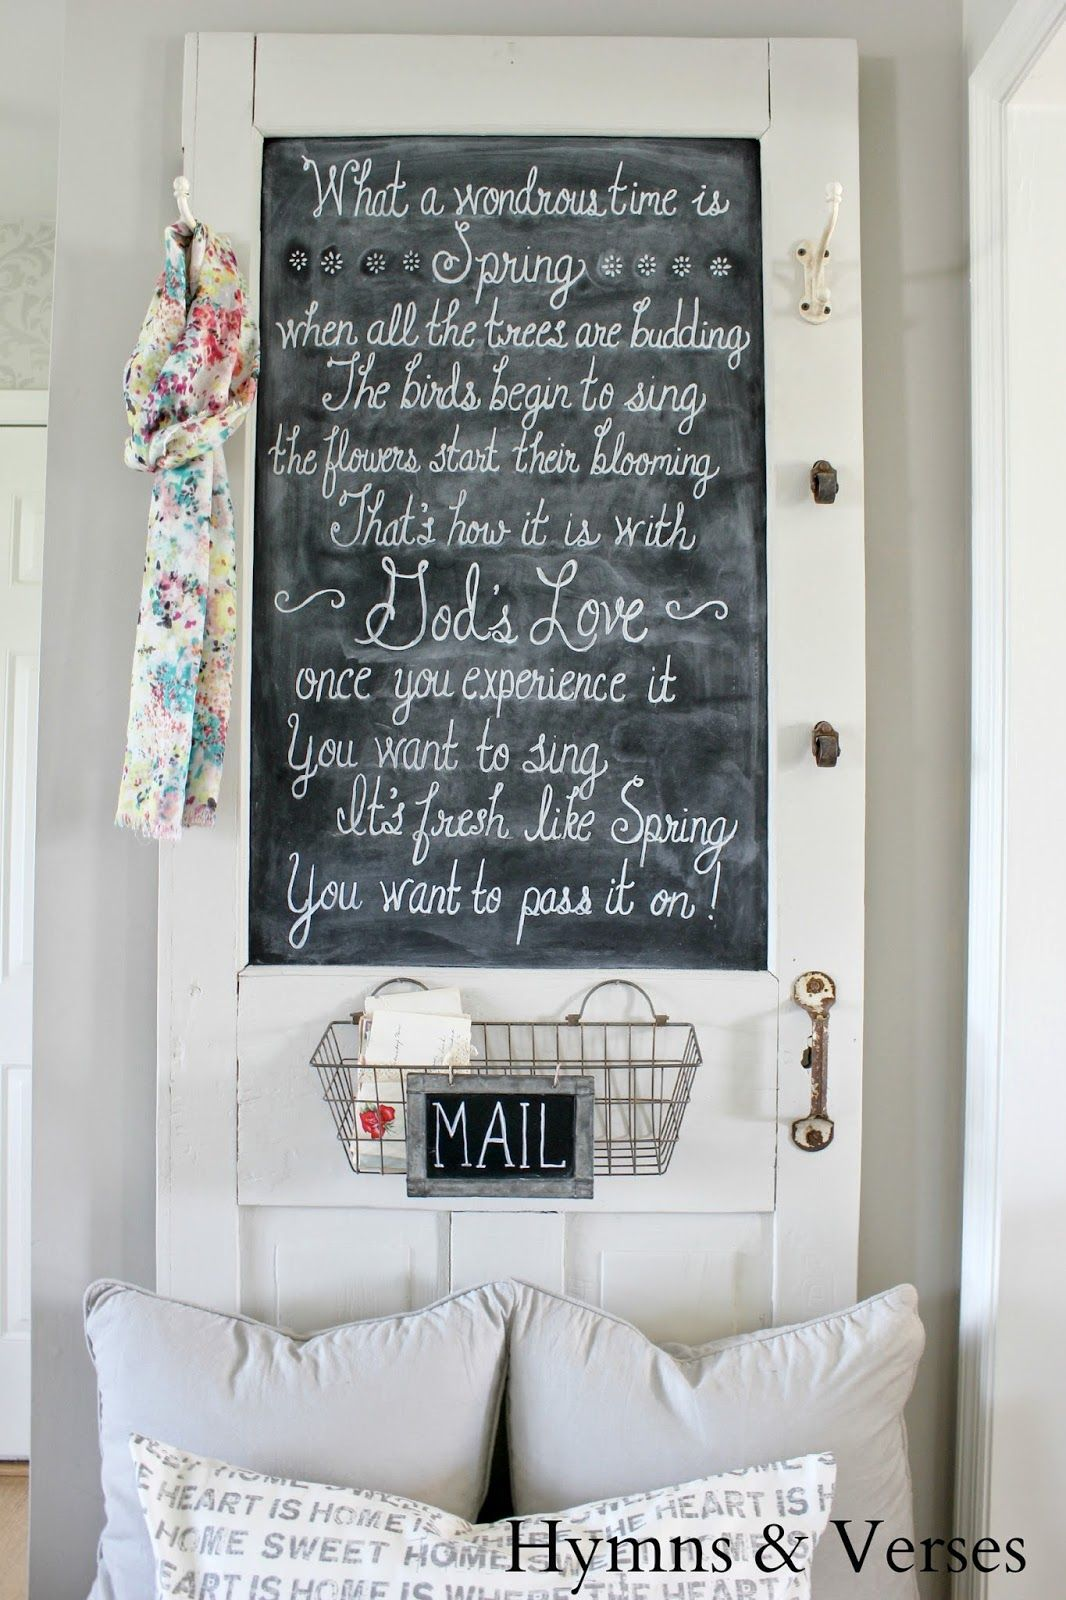 Parade of Homes Tour ~ Hymns and Verses - At The Picket Fence... An old door with a chalkboard sign in it